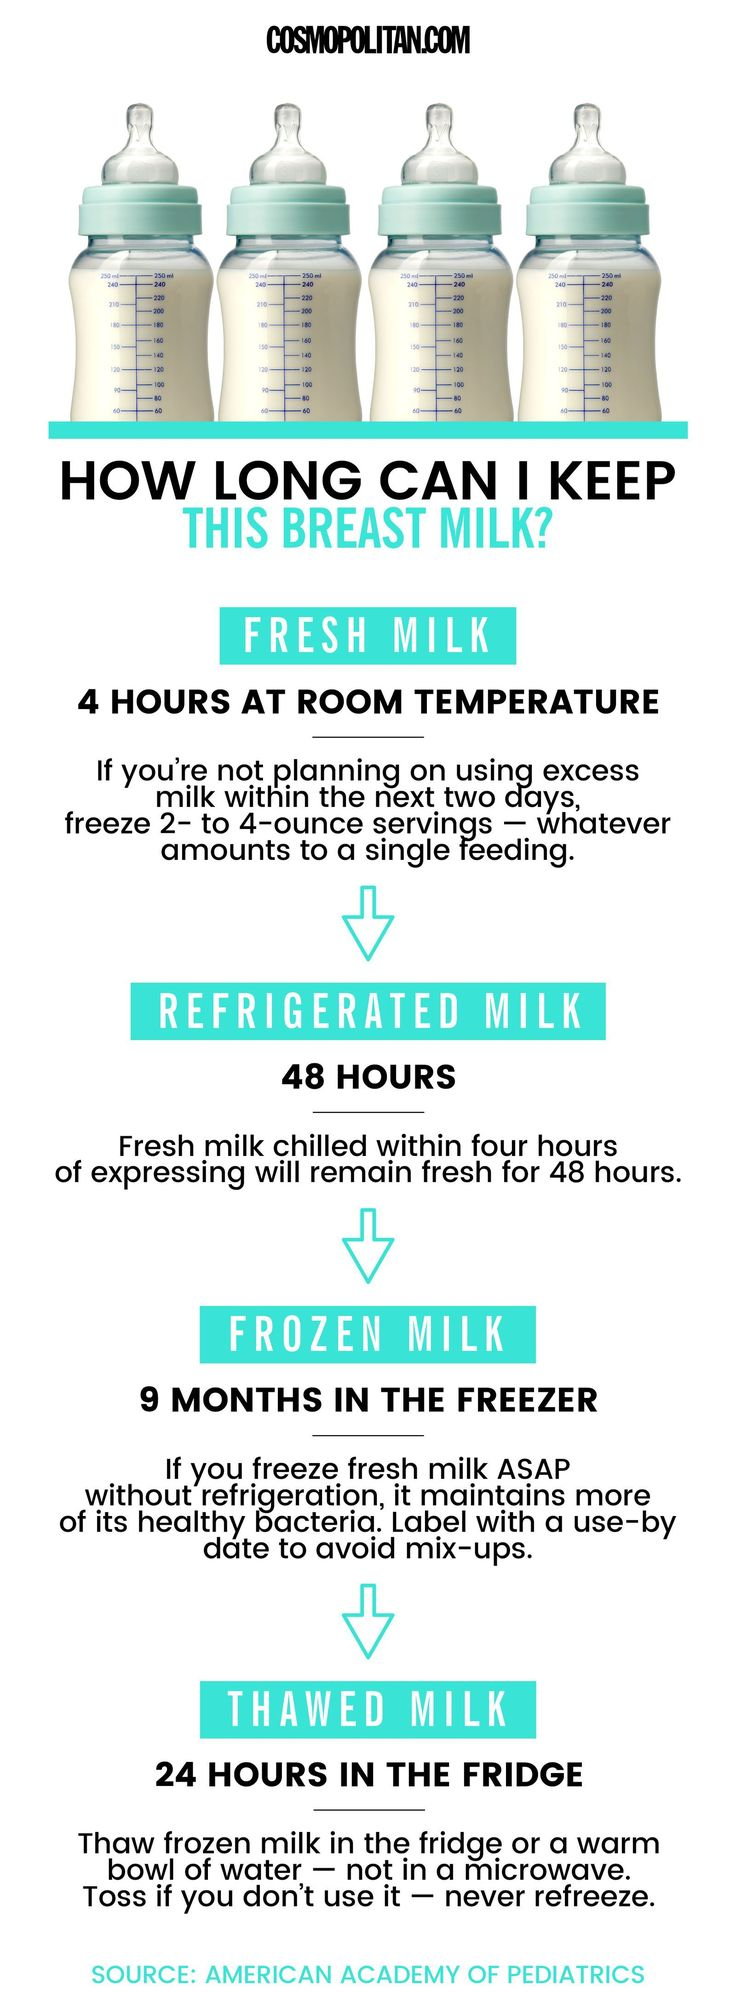 How Long Can I Keep This Breast Milk? - Cosmopolitan.com #BabyTips